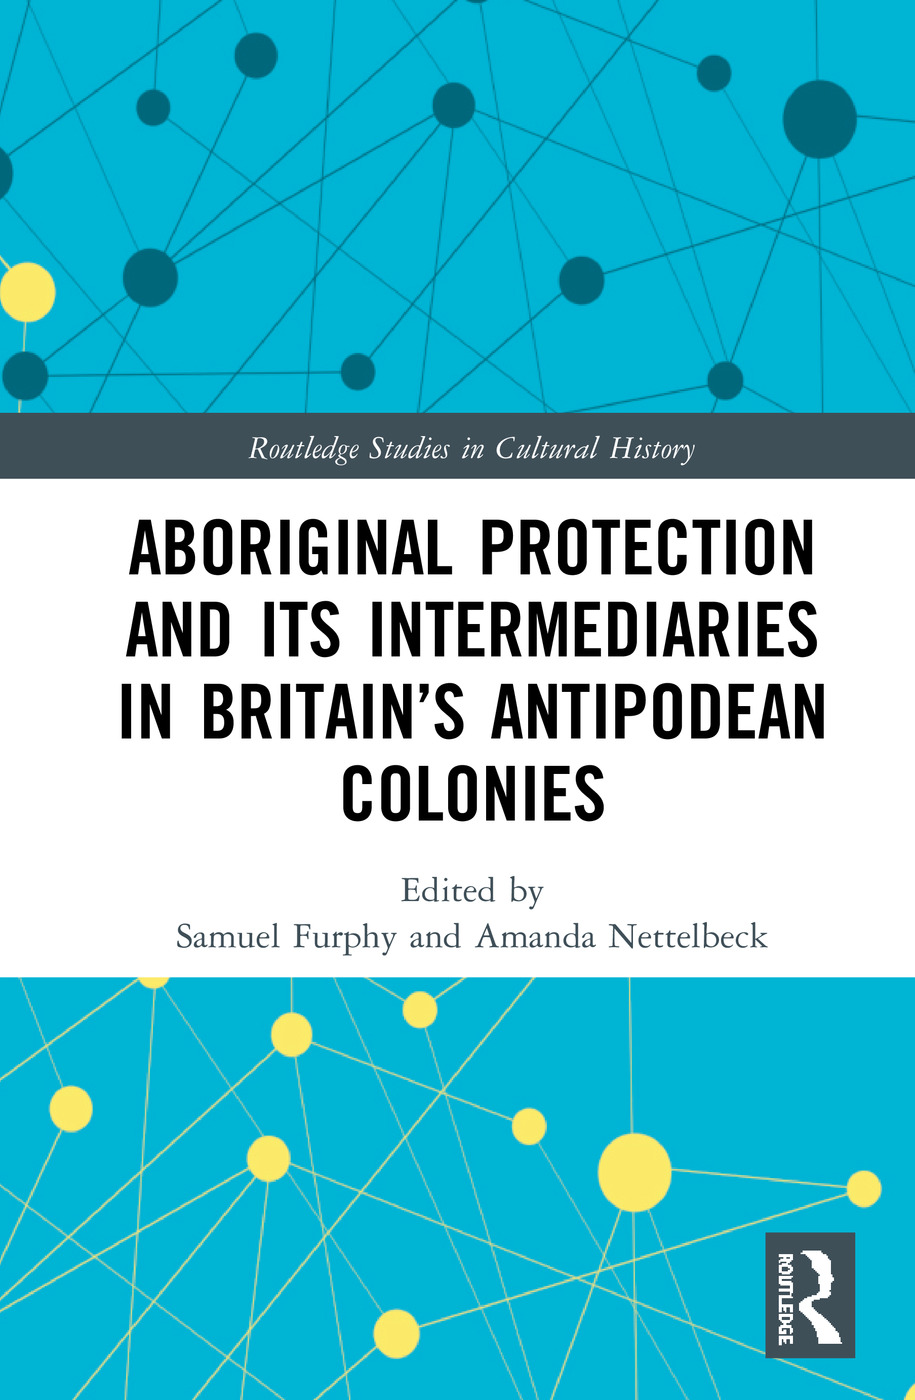 Aboriginal Protection and Its Intermediaries in Britain's Antipodean Colonies book cover